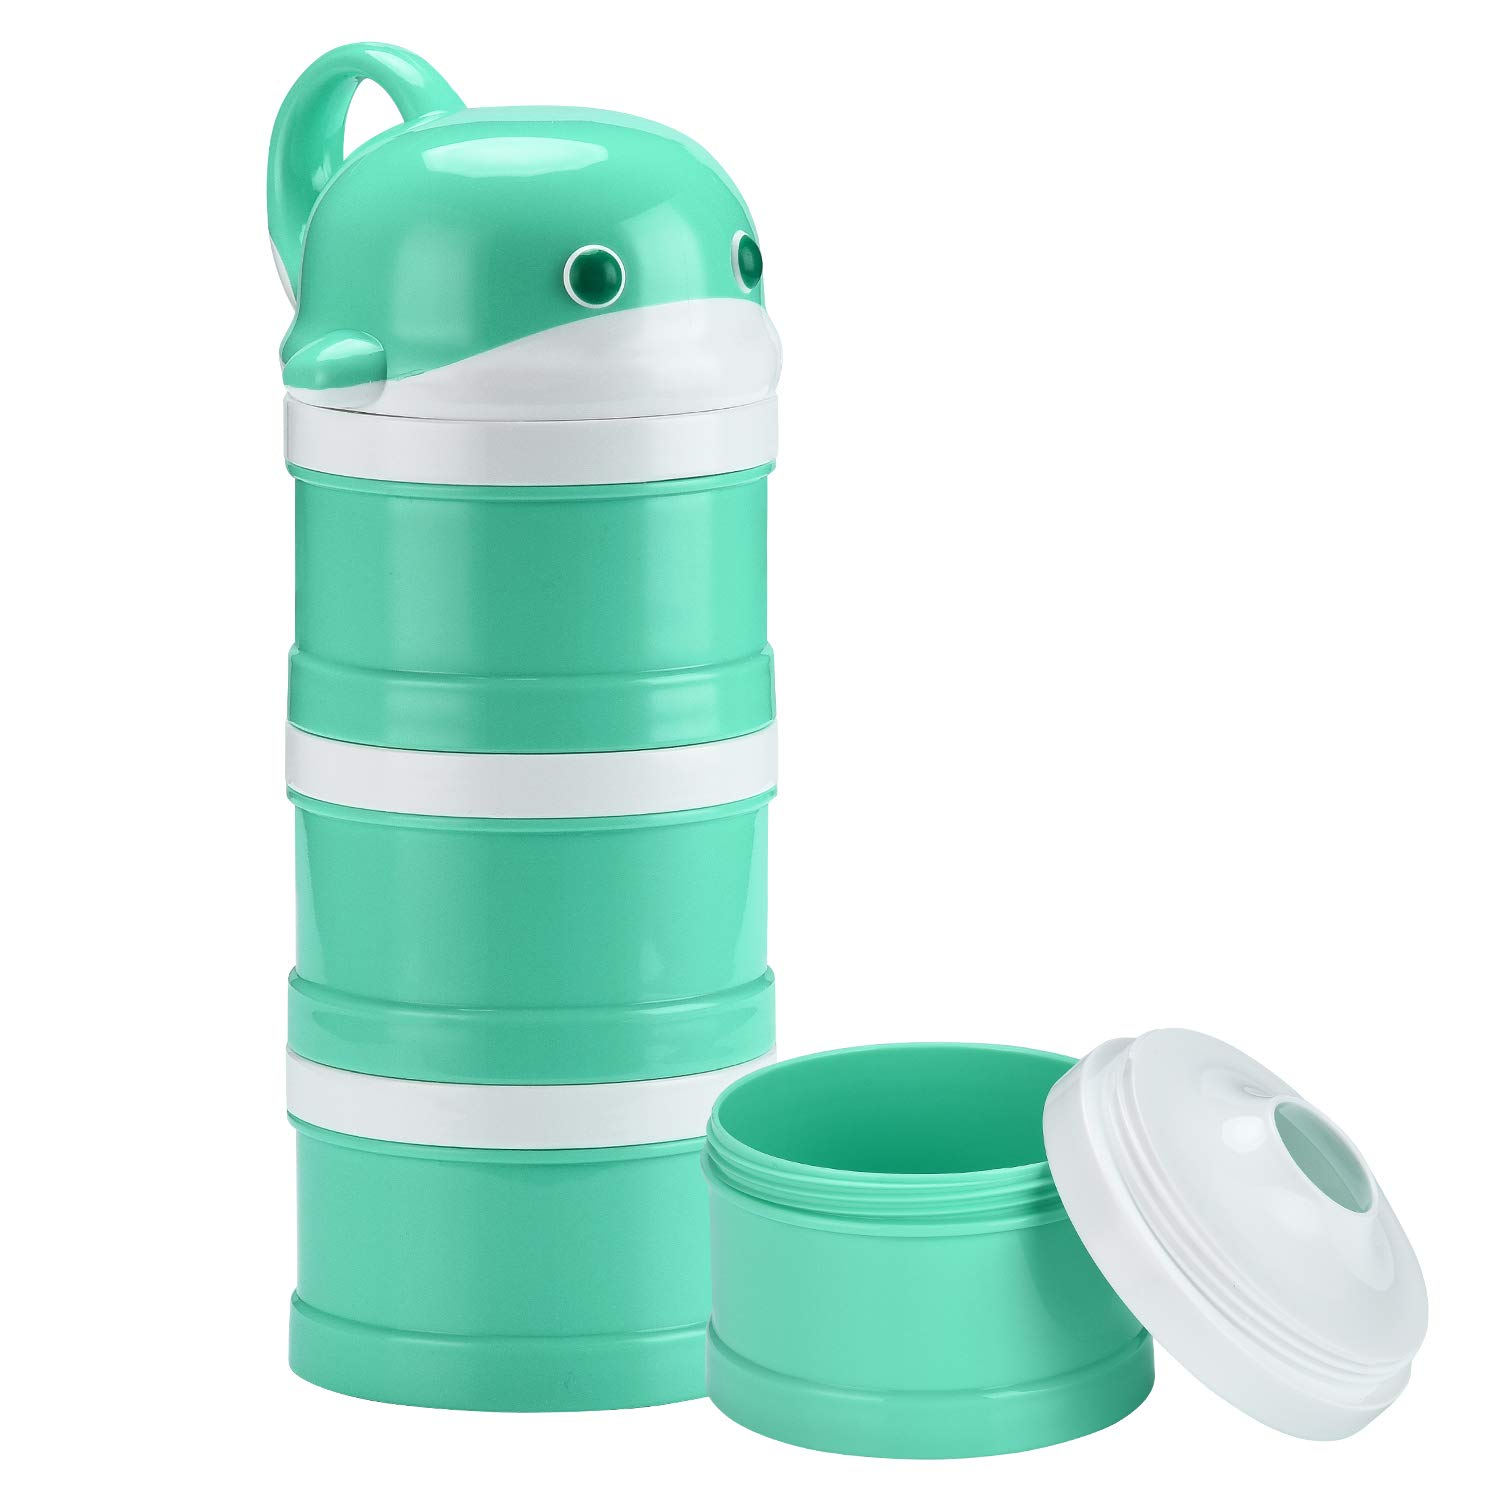 Burabi Baby Formula Snack Dispenser Stackable Portion Container for Travel 3 Compartments Non-Spill (Cyan) by Burabi